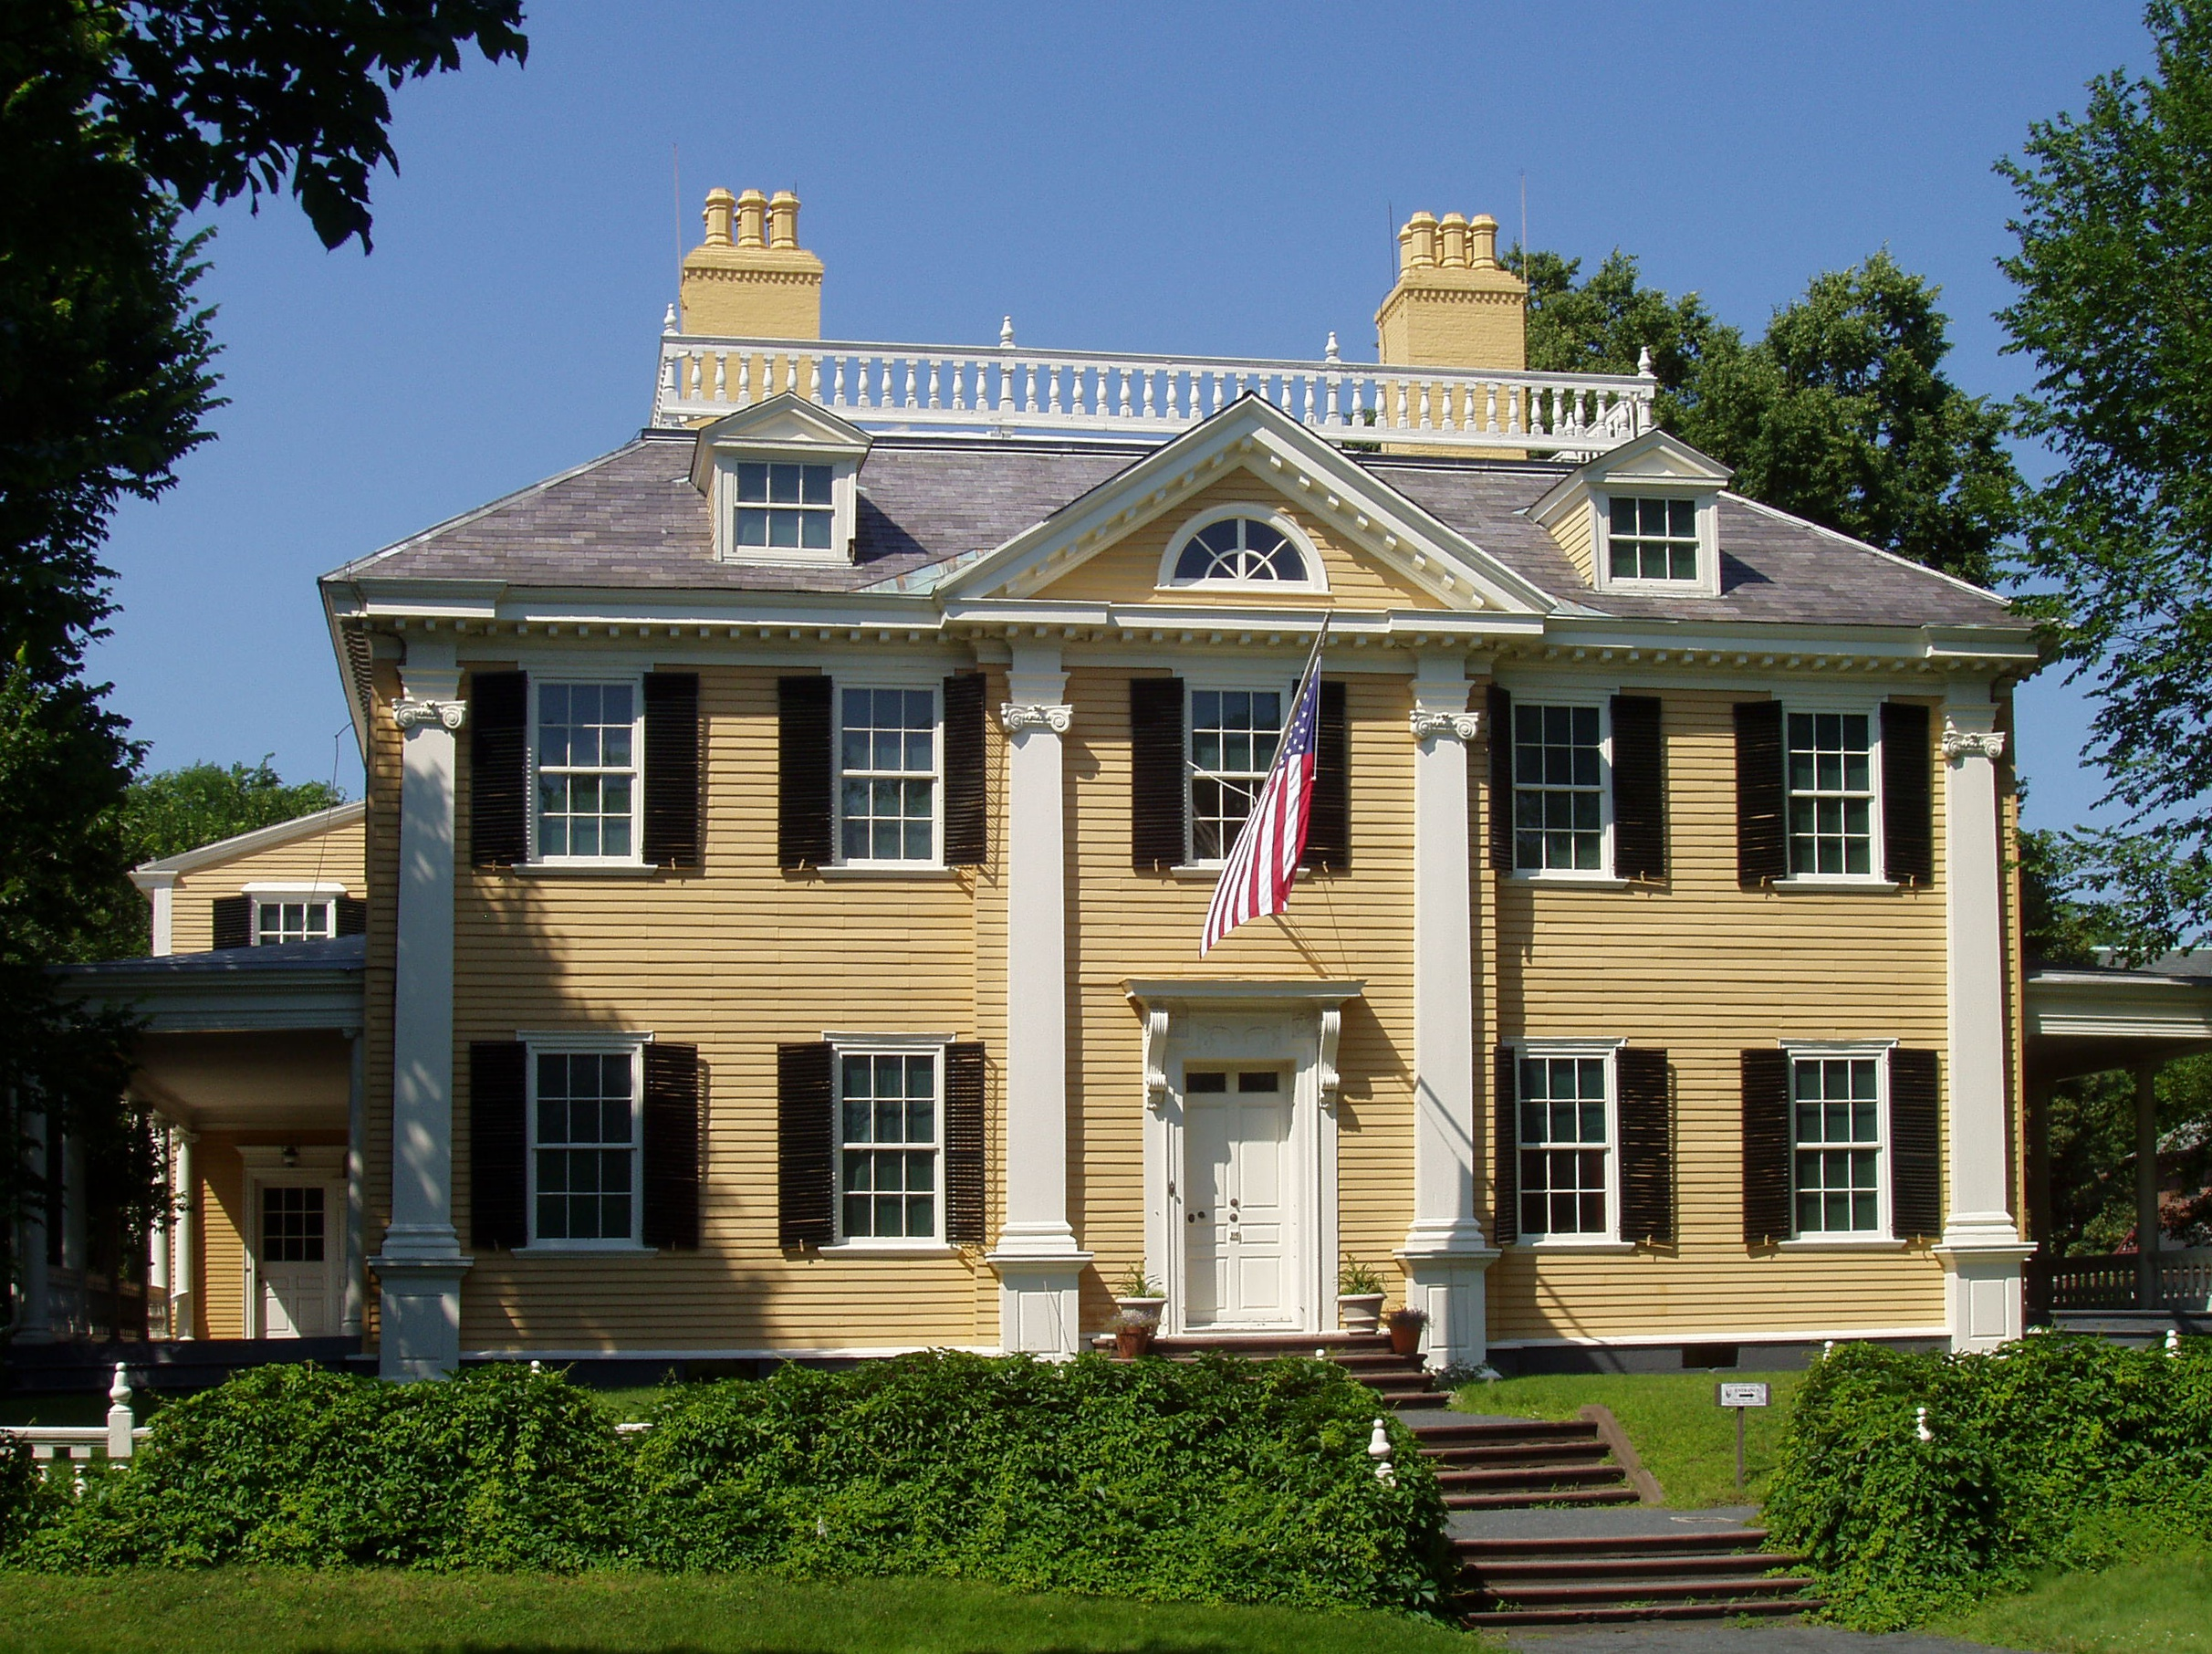 Longfellow House – Washington's Headquarters National Historic Site